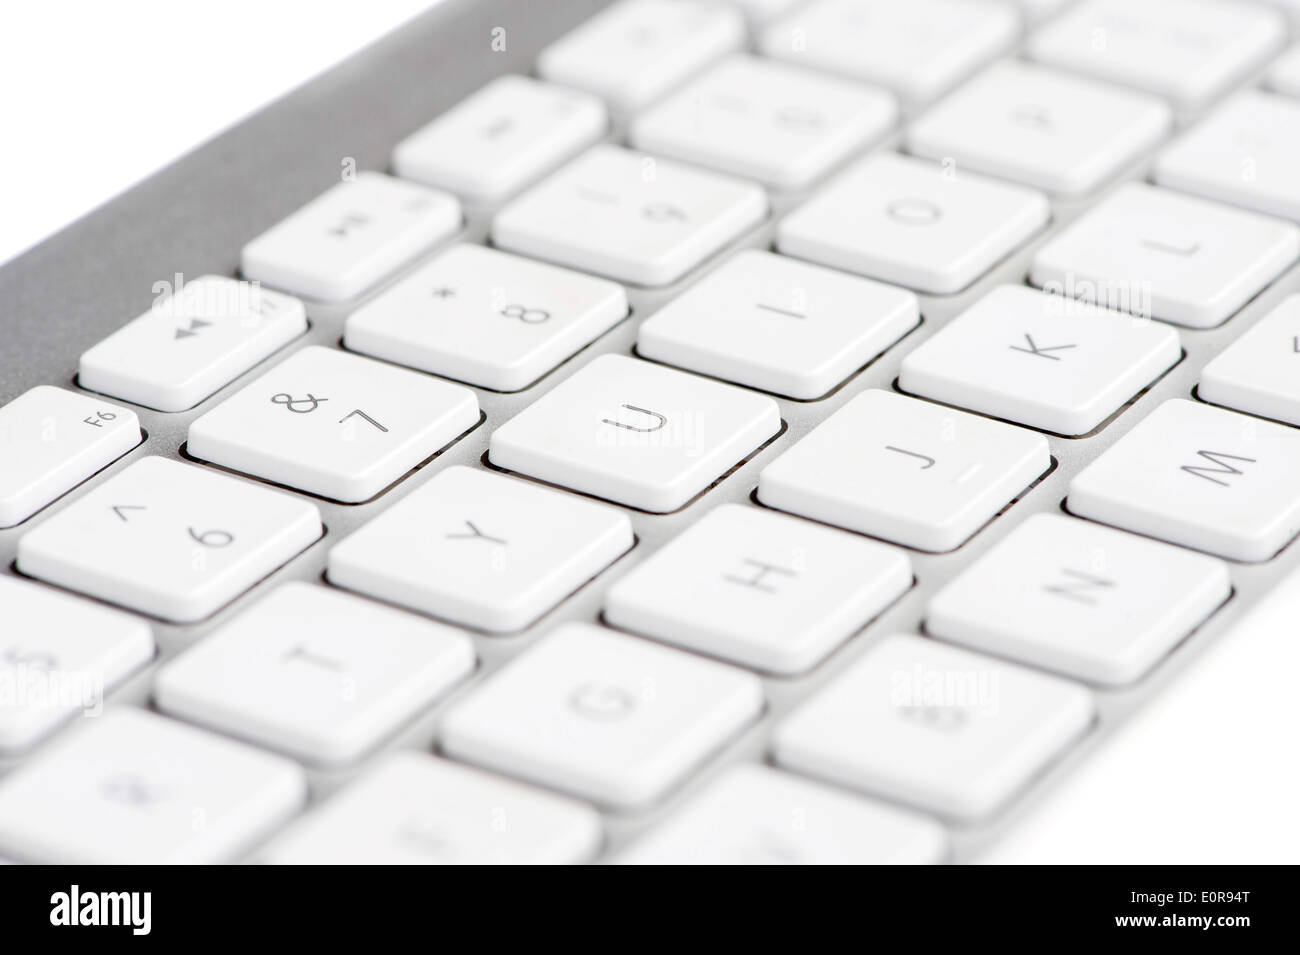 Apple mac white Keyboard focused on the letter U - Stock Image